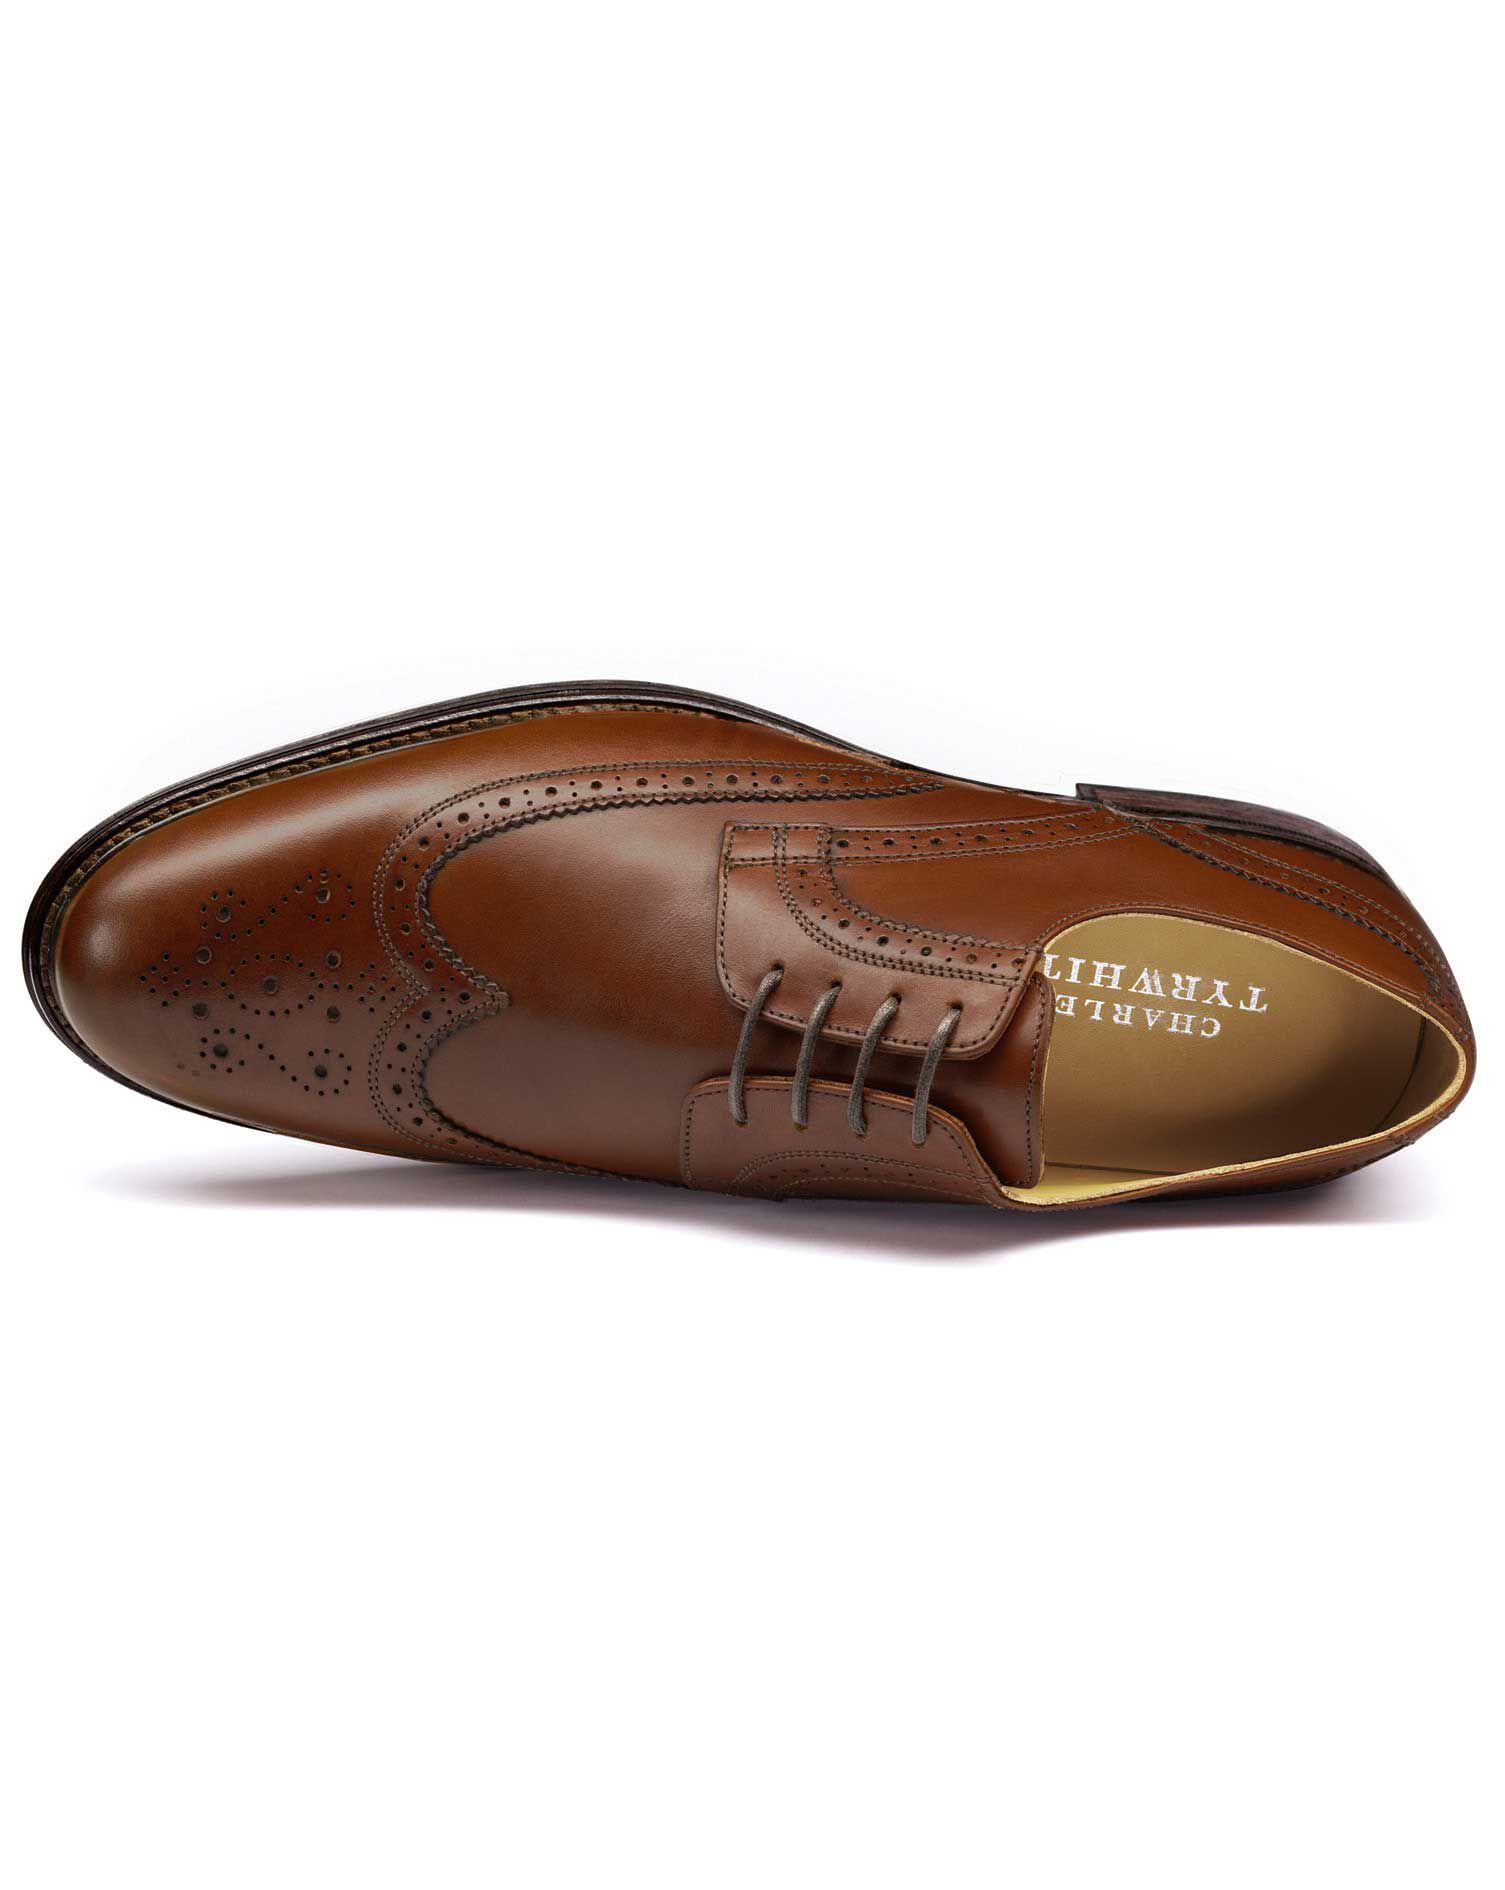 Tan Halton Wing Tip Brogue Derby Shoes Size 9.5 R by Charles Tyrwhitt